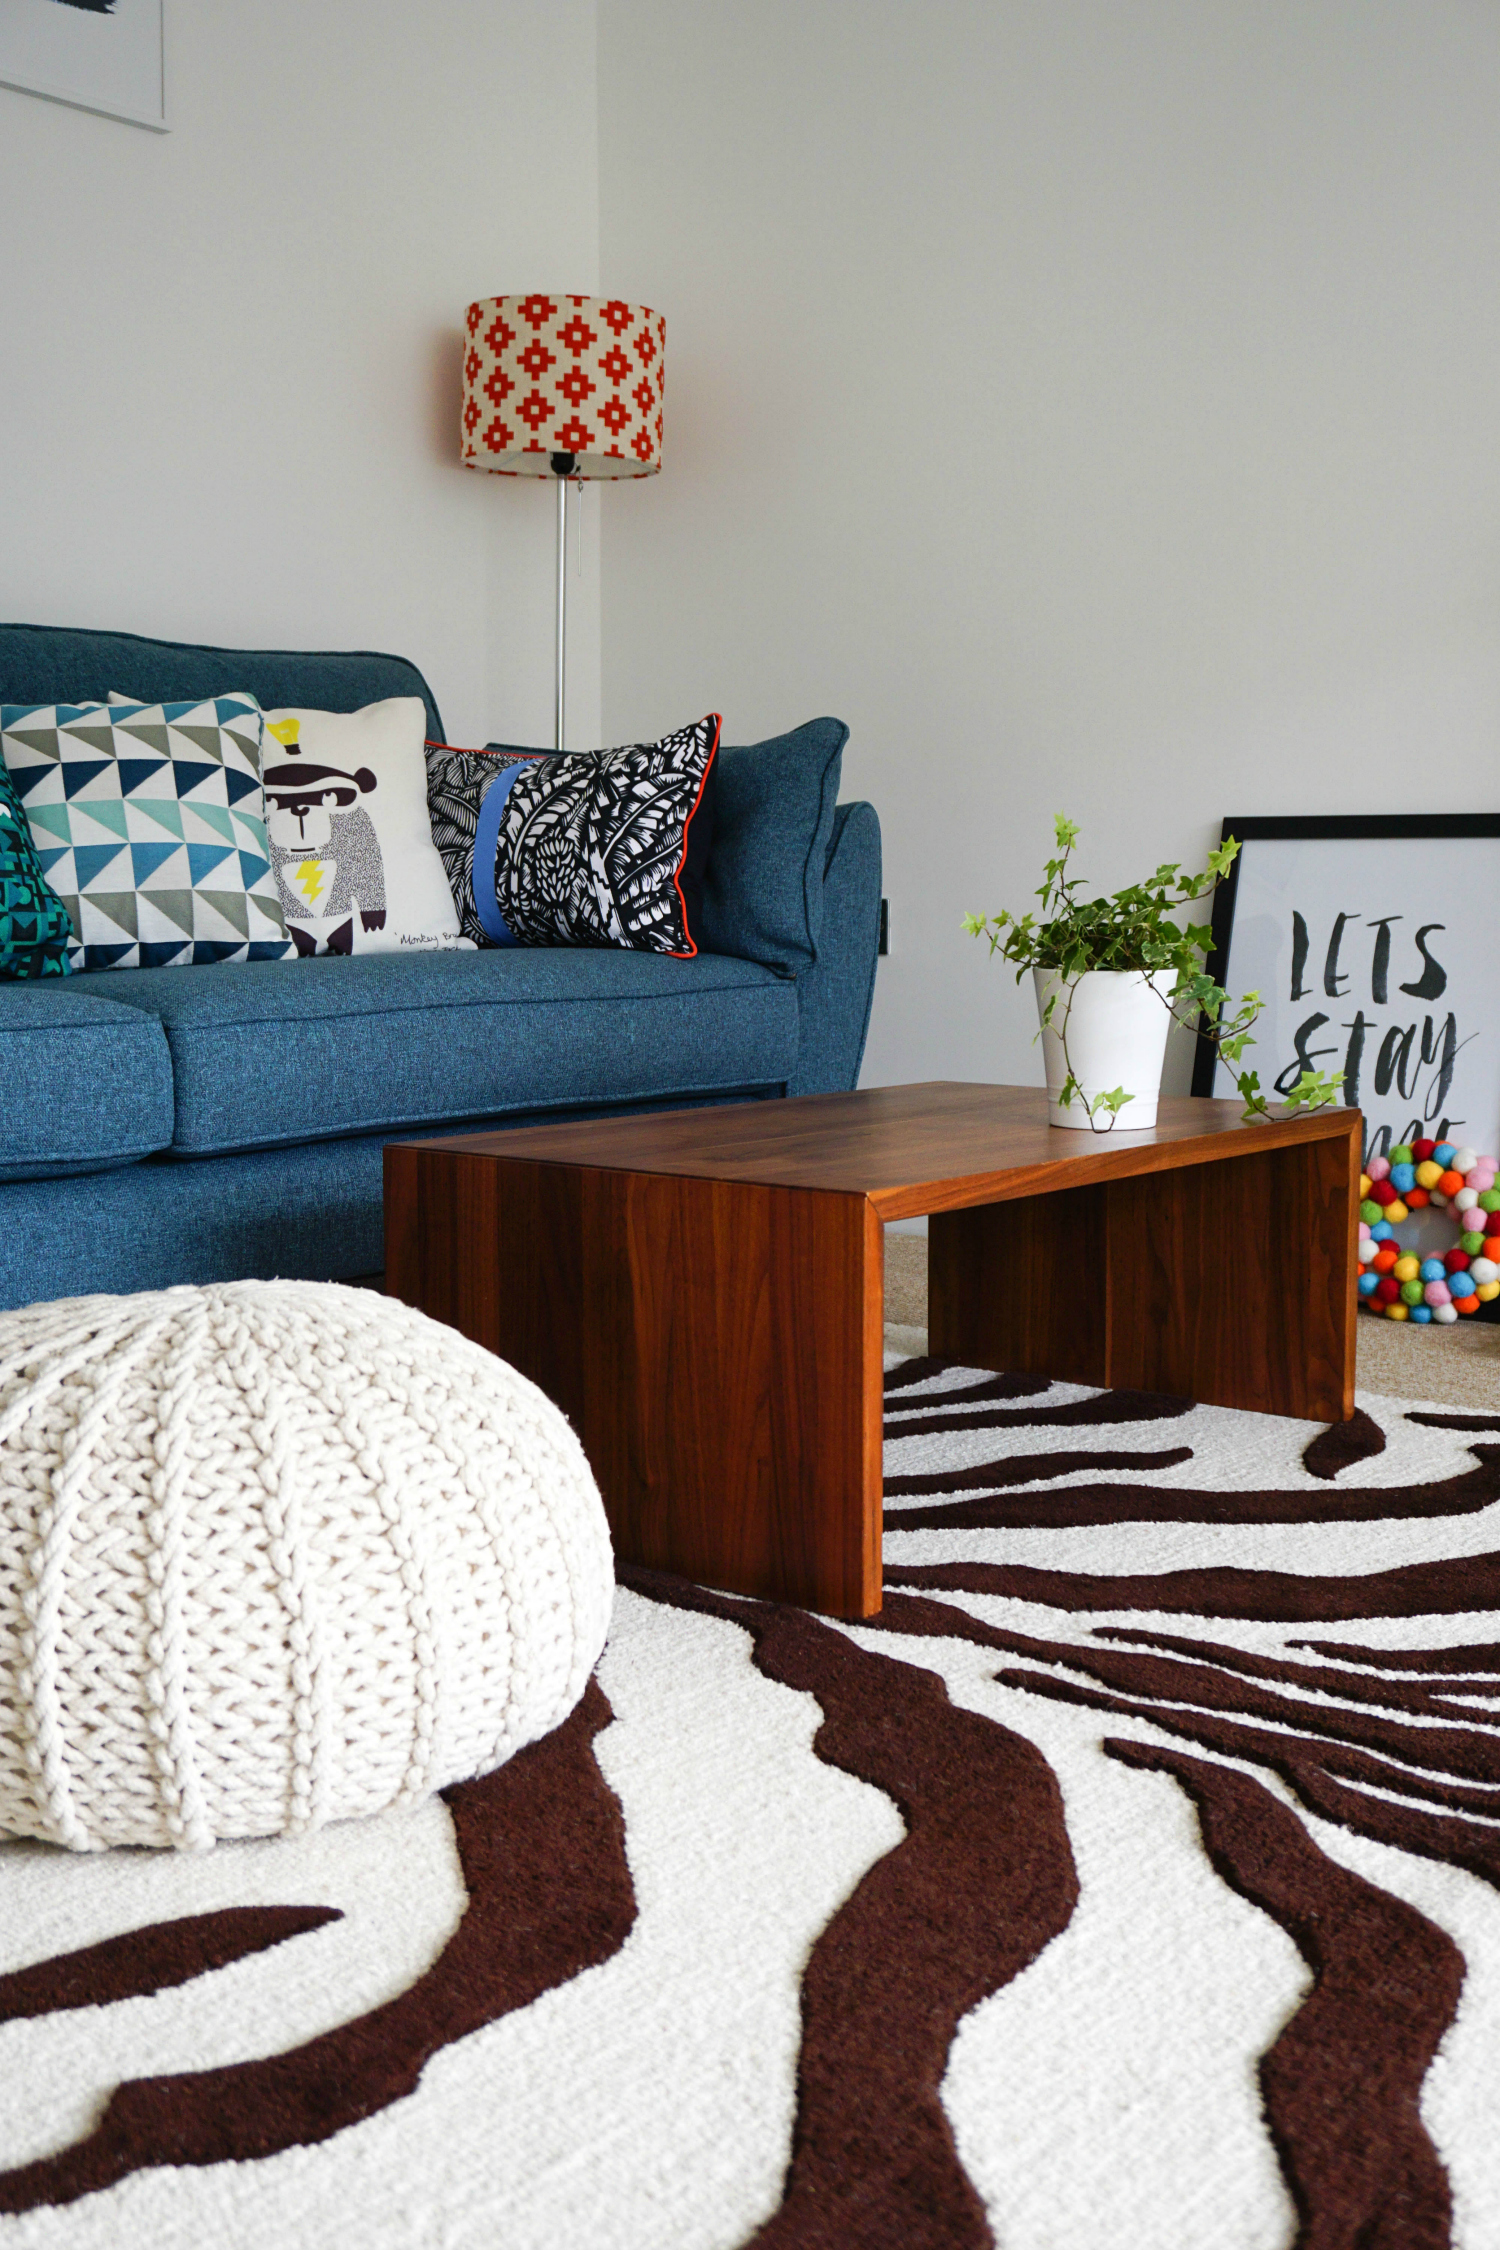 How to revamp a room with a rug